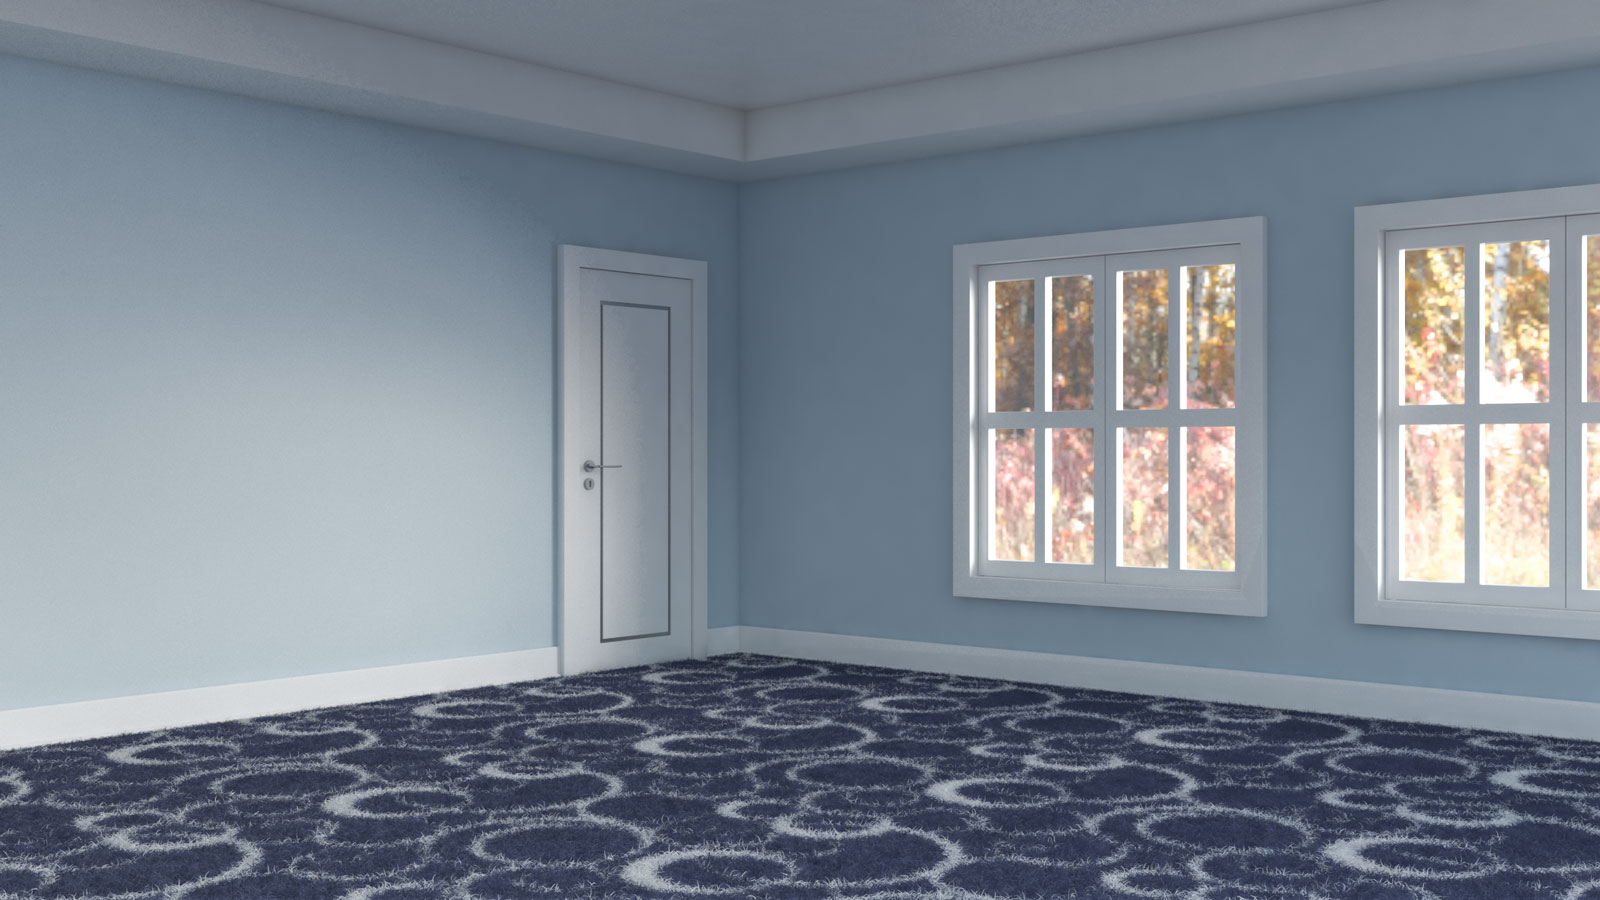 Navy and white carpet inside room with light blue walls